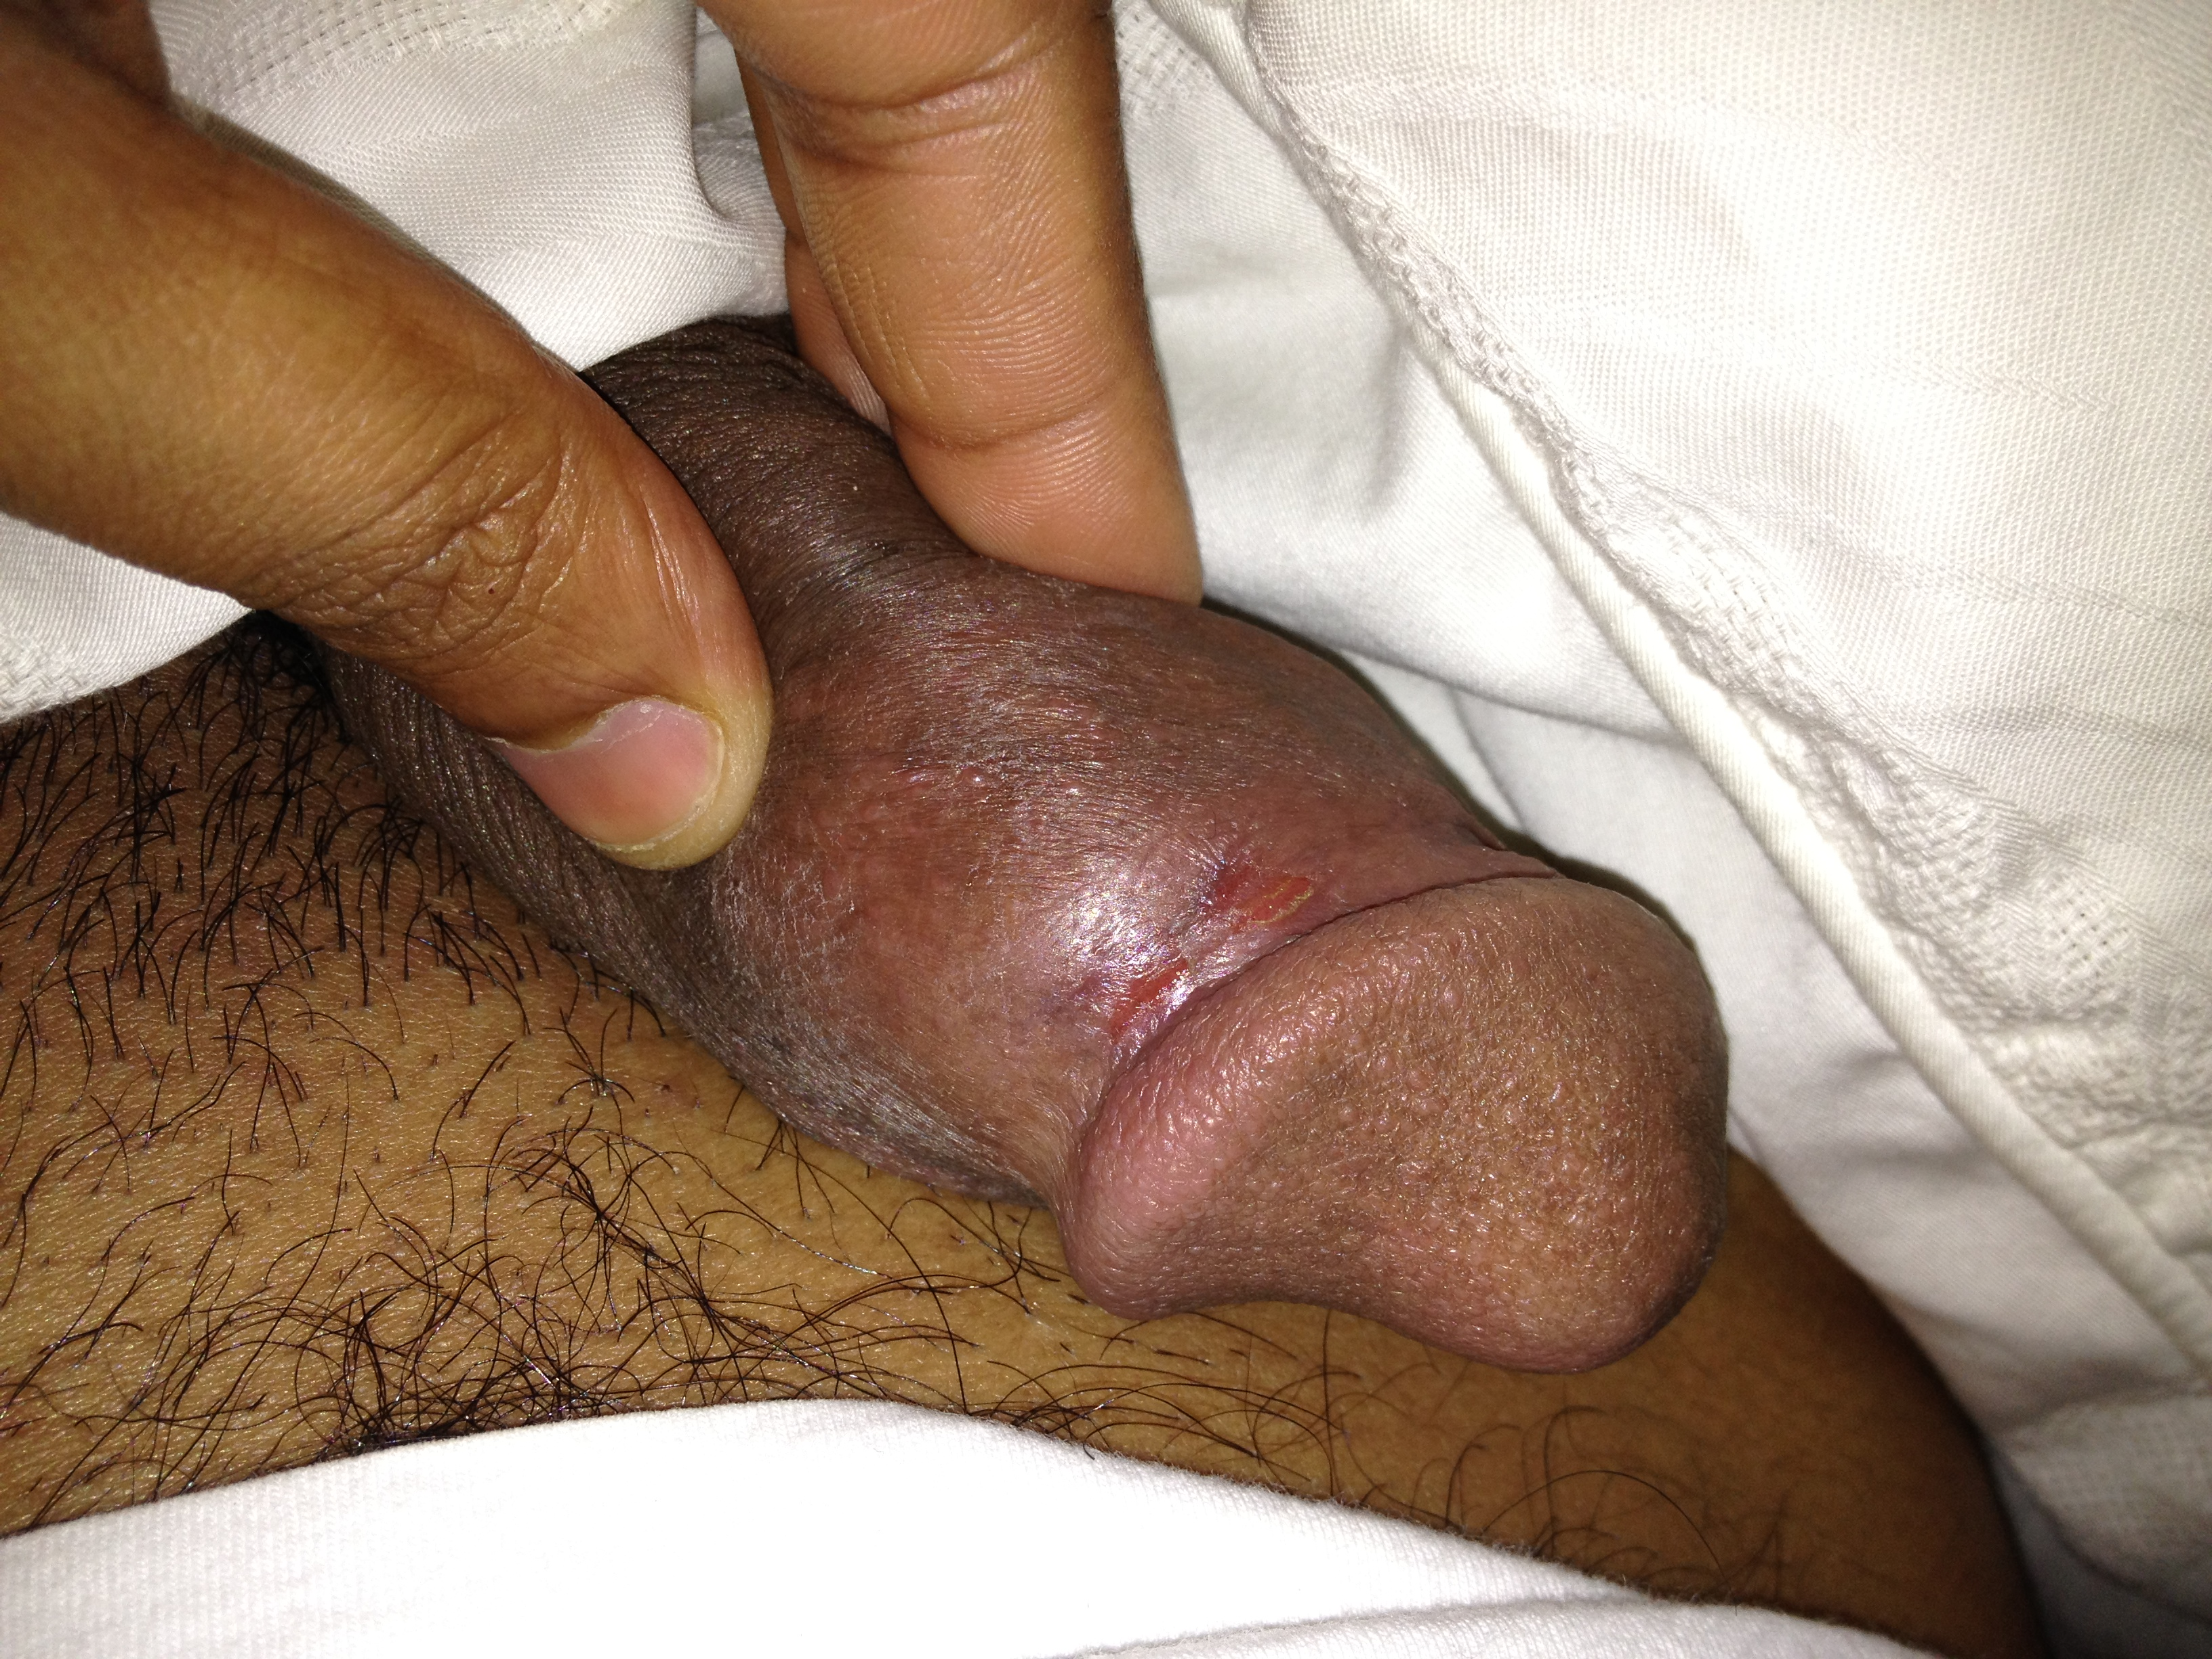 Small cut on penis